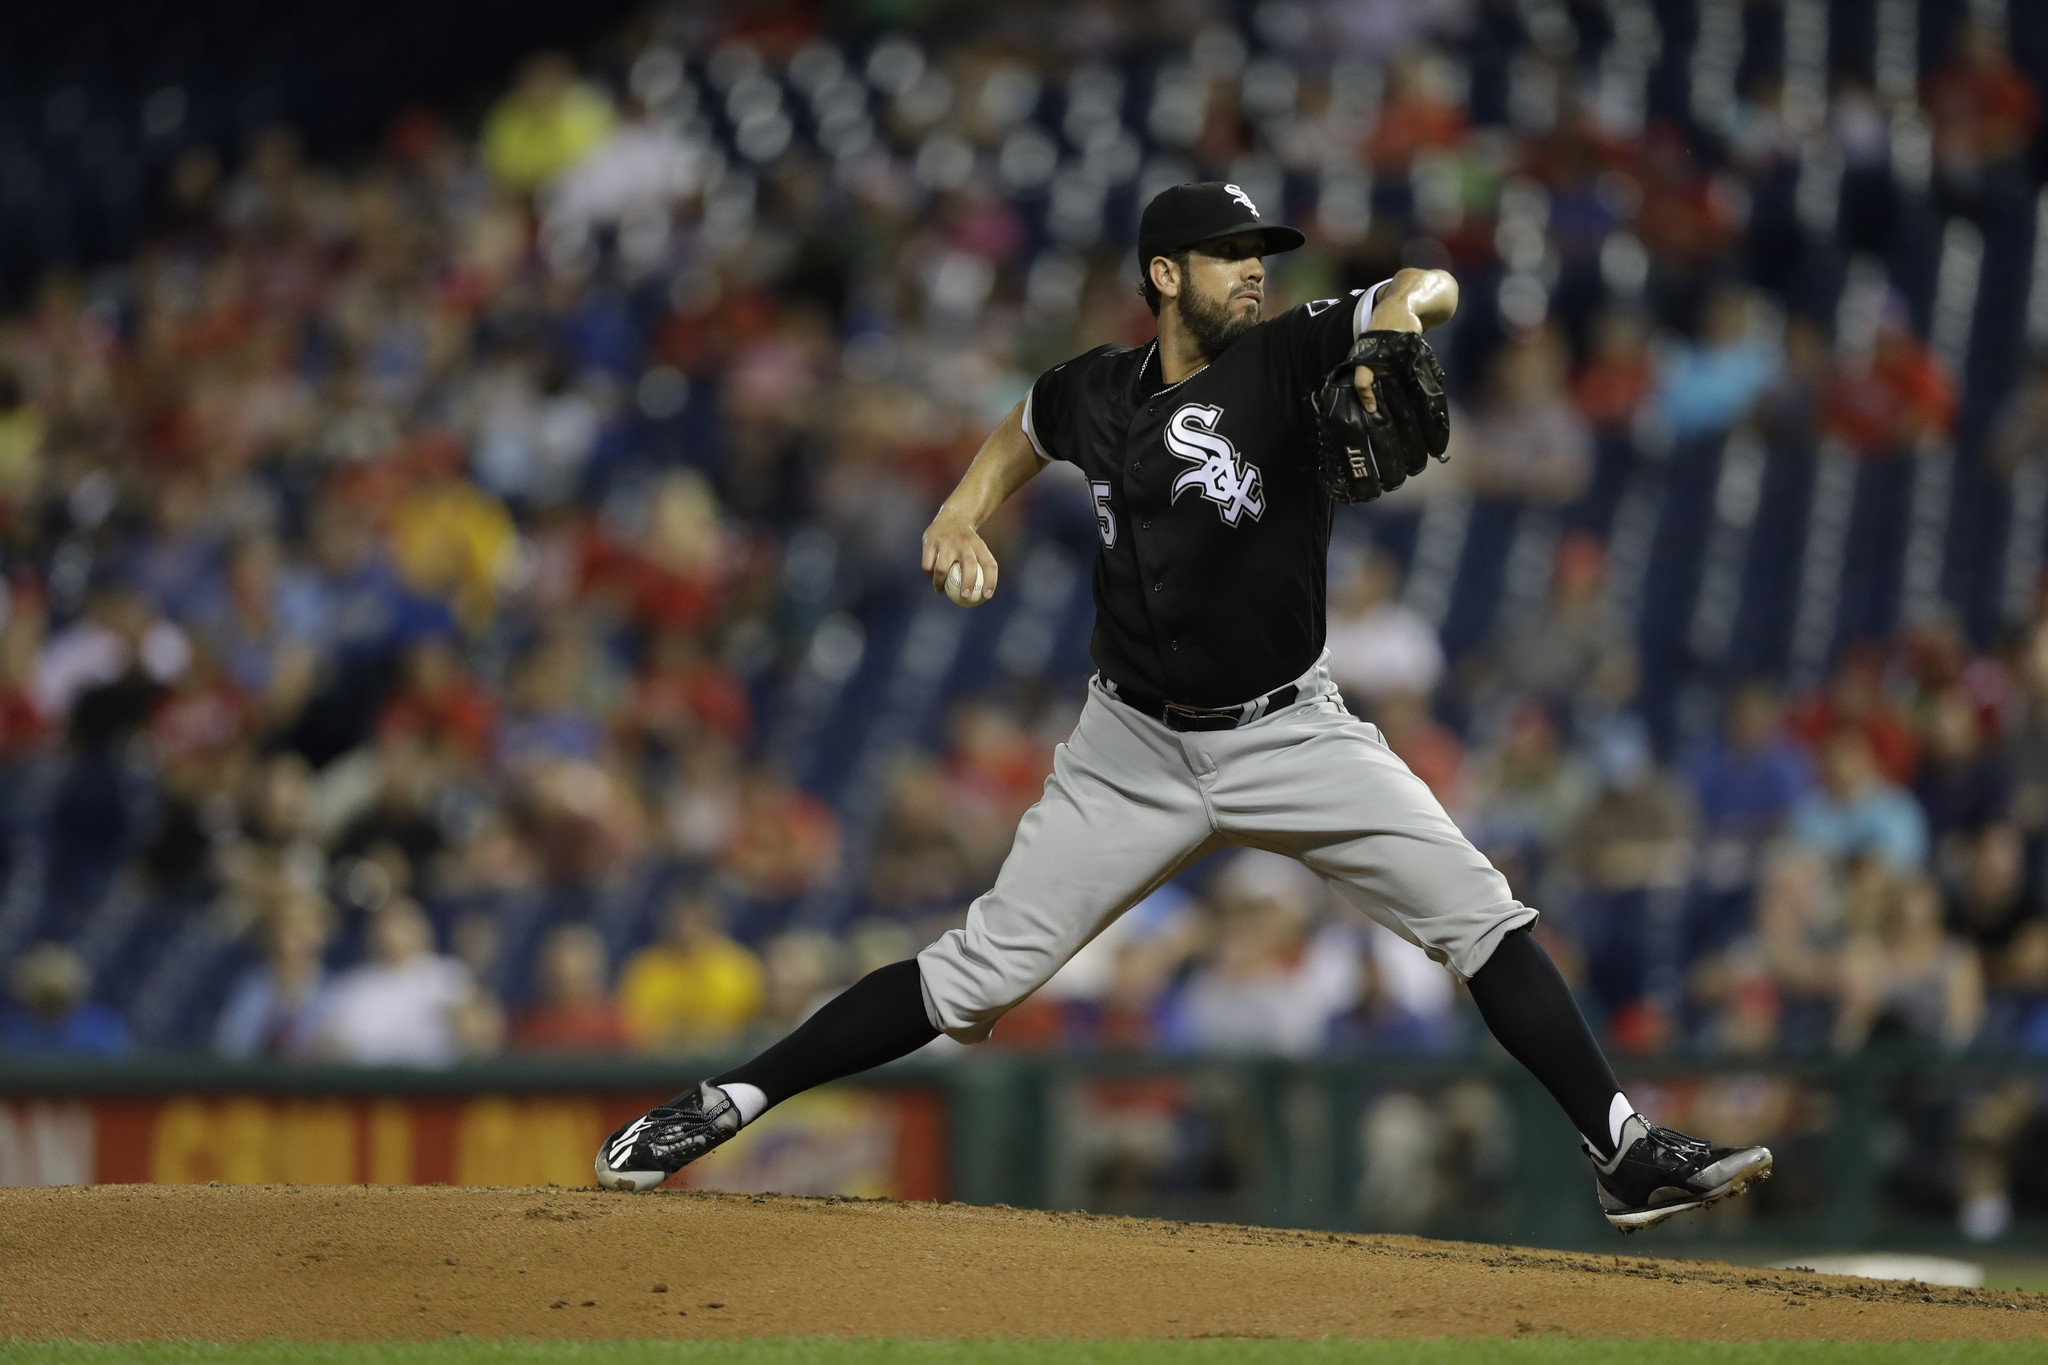 Ct-series-white-sox-rays-spt-0926-20160925